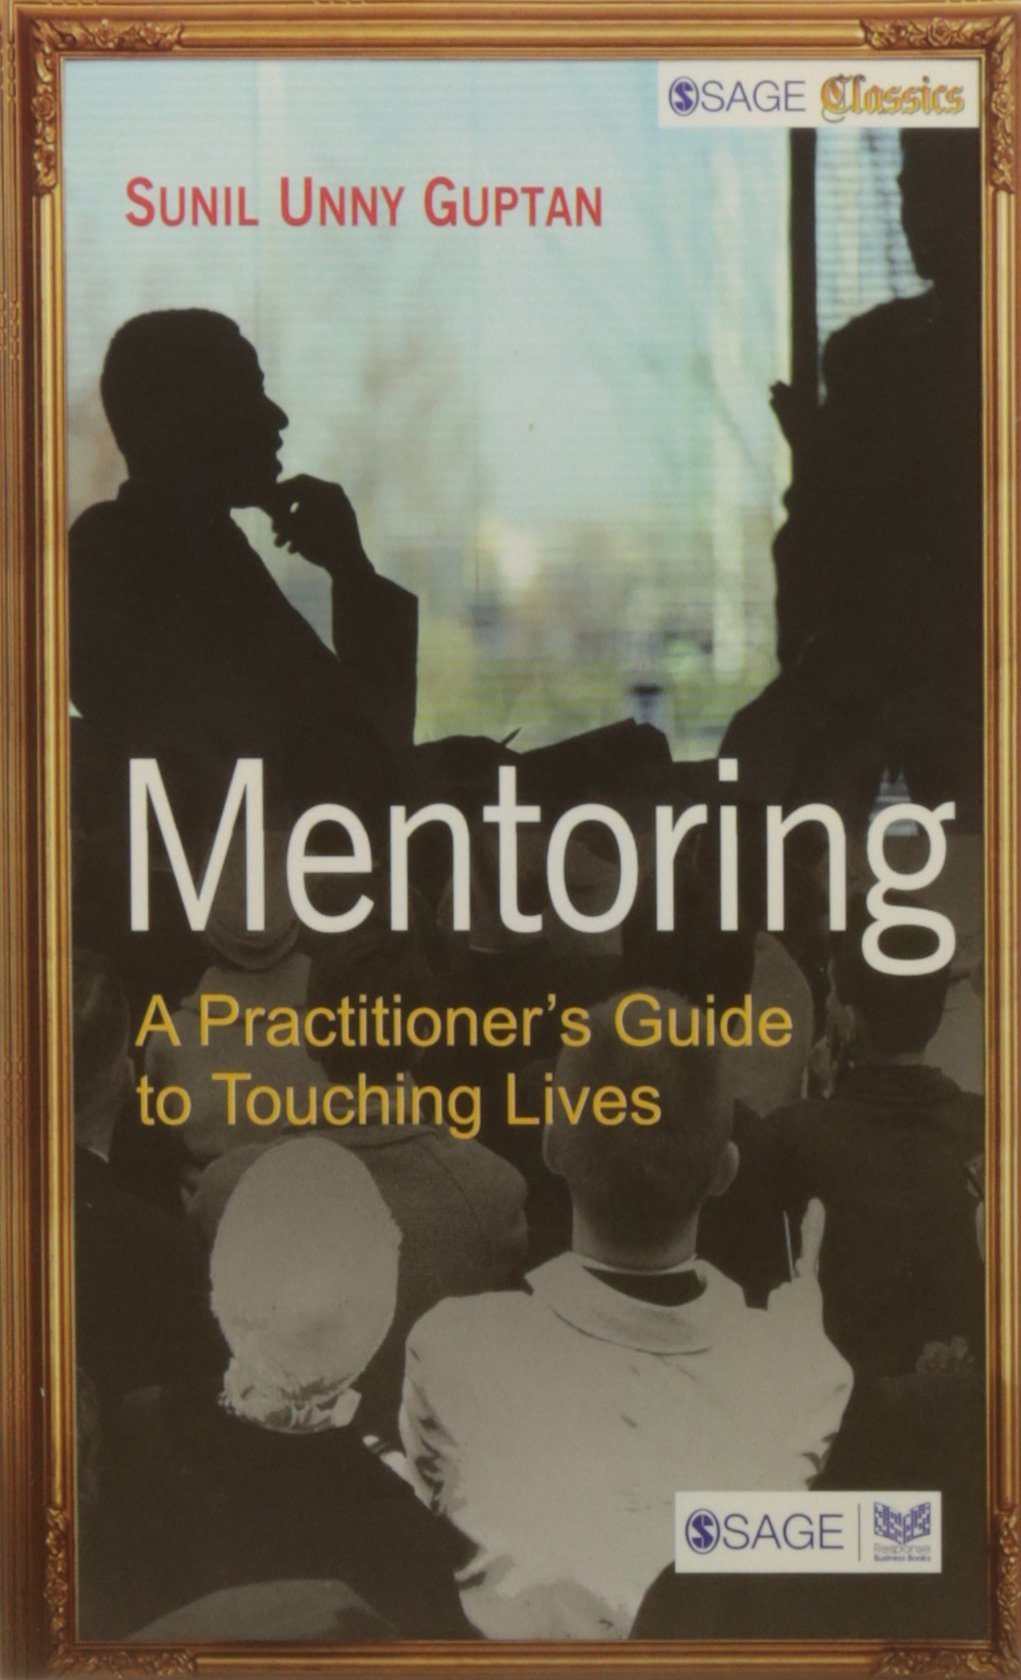 Mentoring: A Practitioner's Guide to Touching Lives